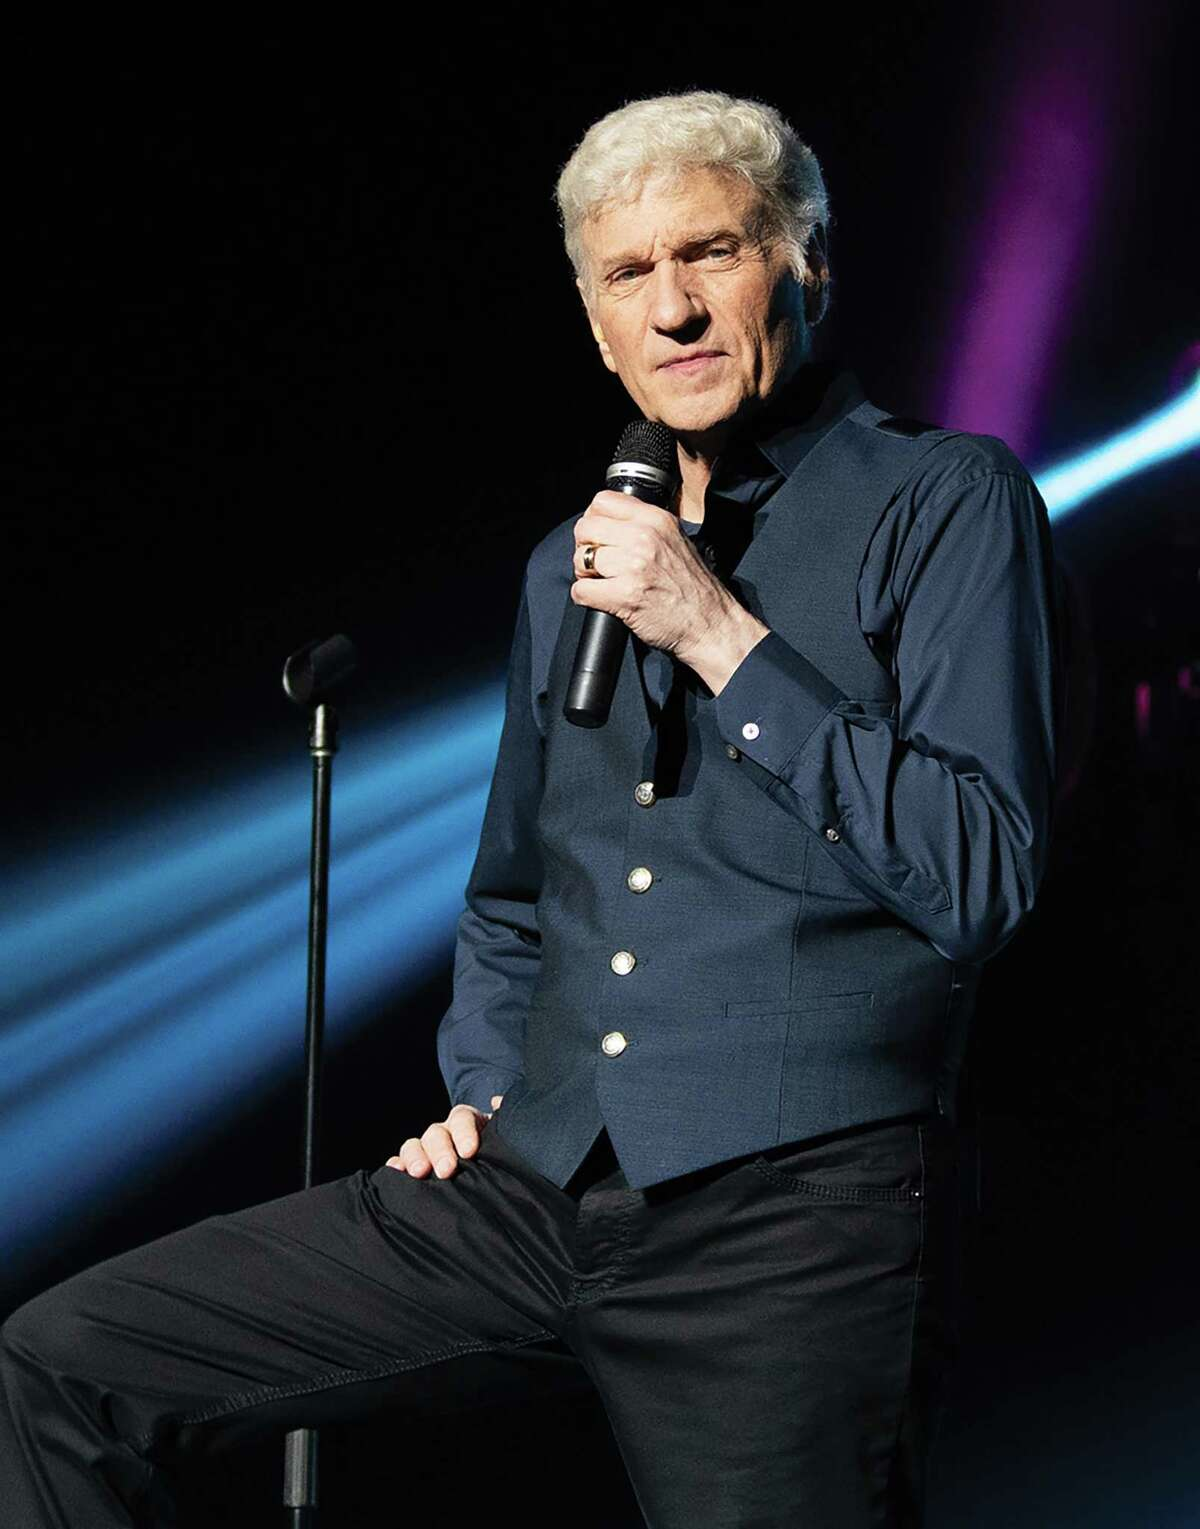 Former Styx vocalist Dennis DeYoung will release his new solo album